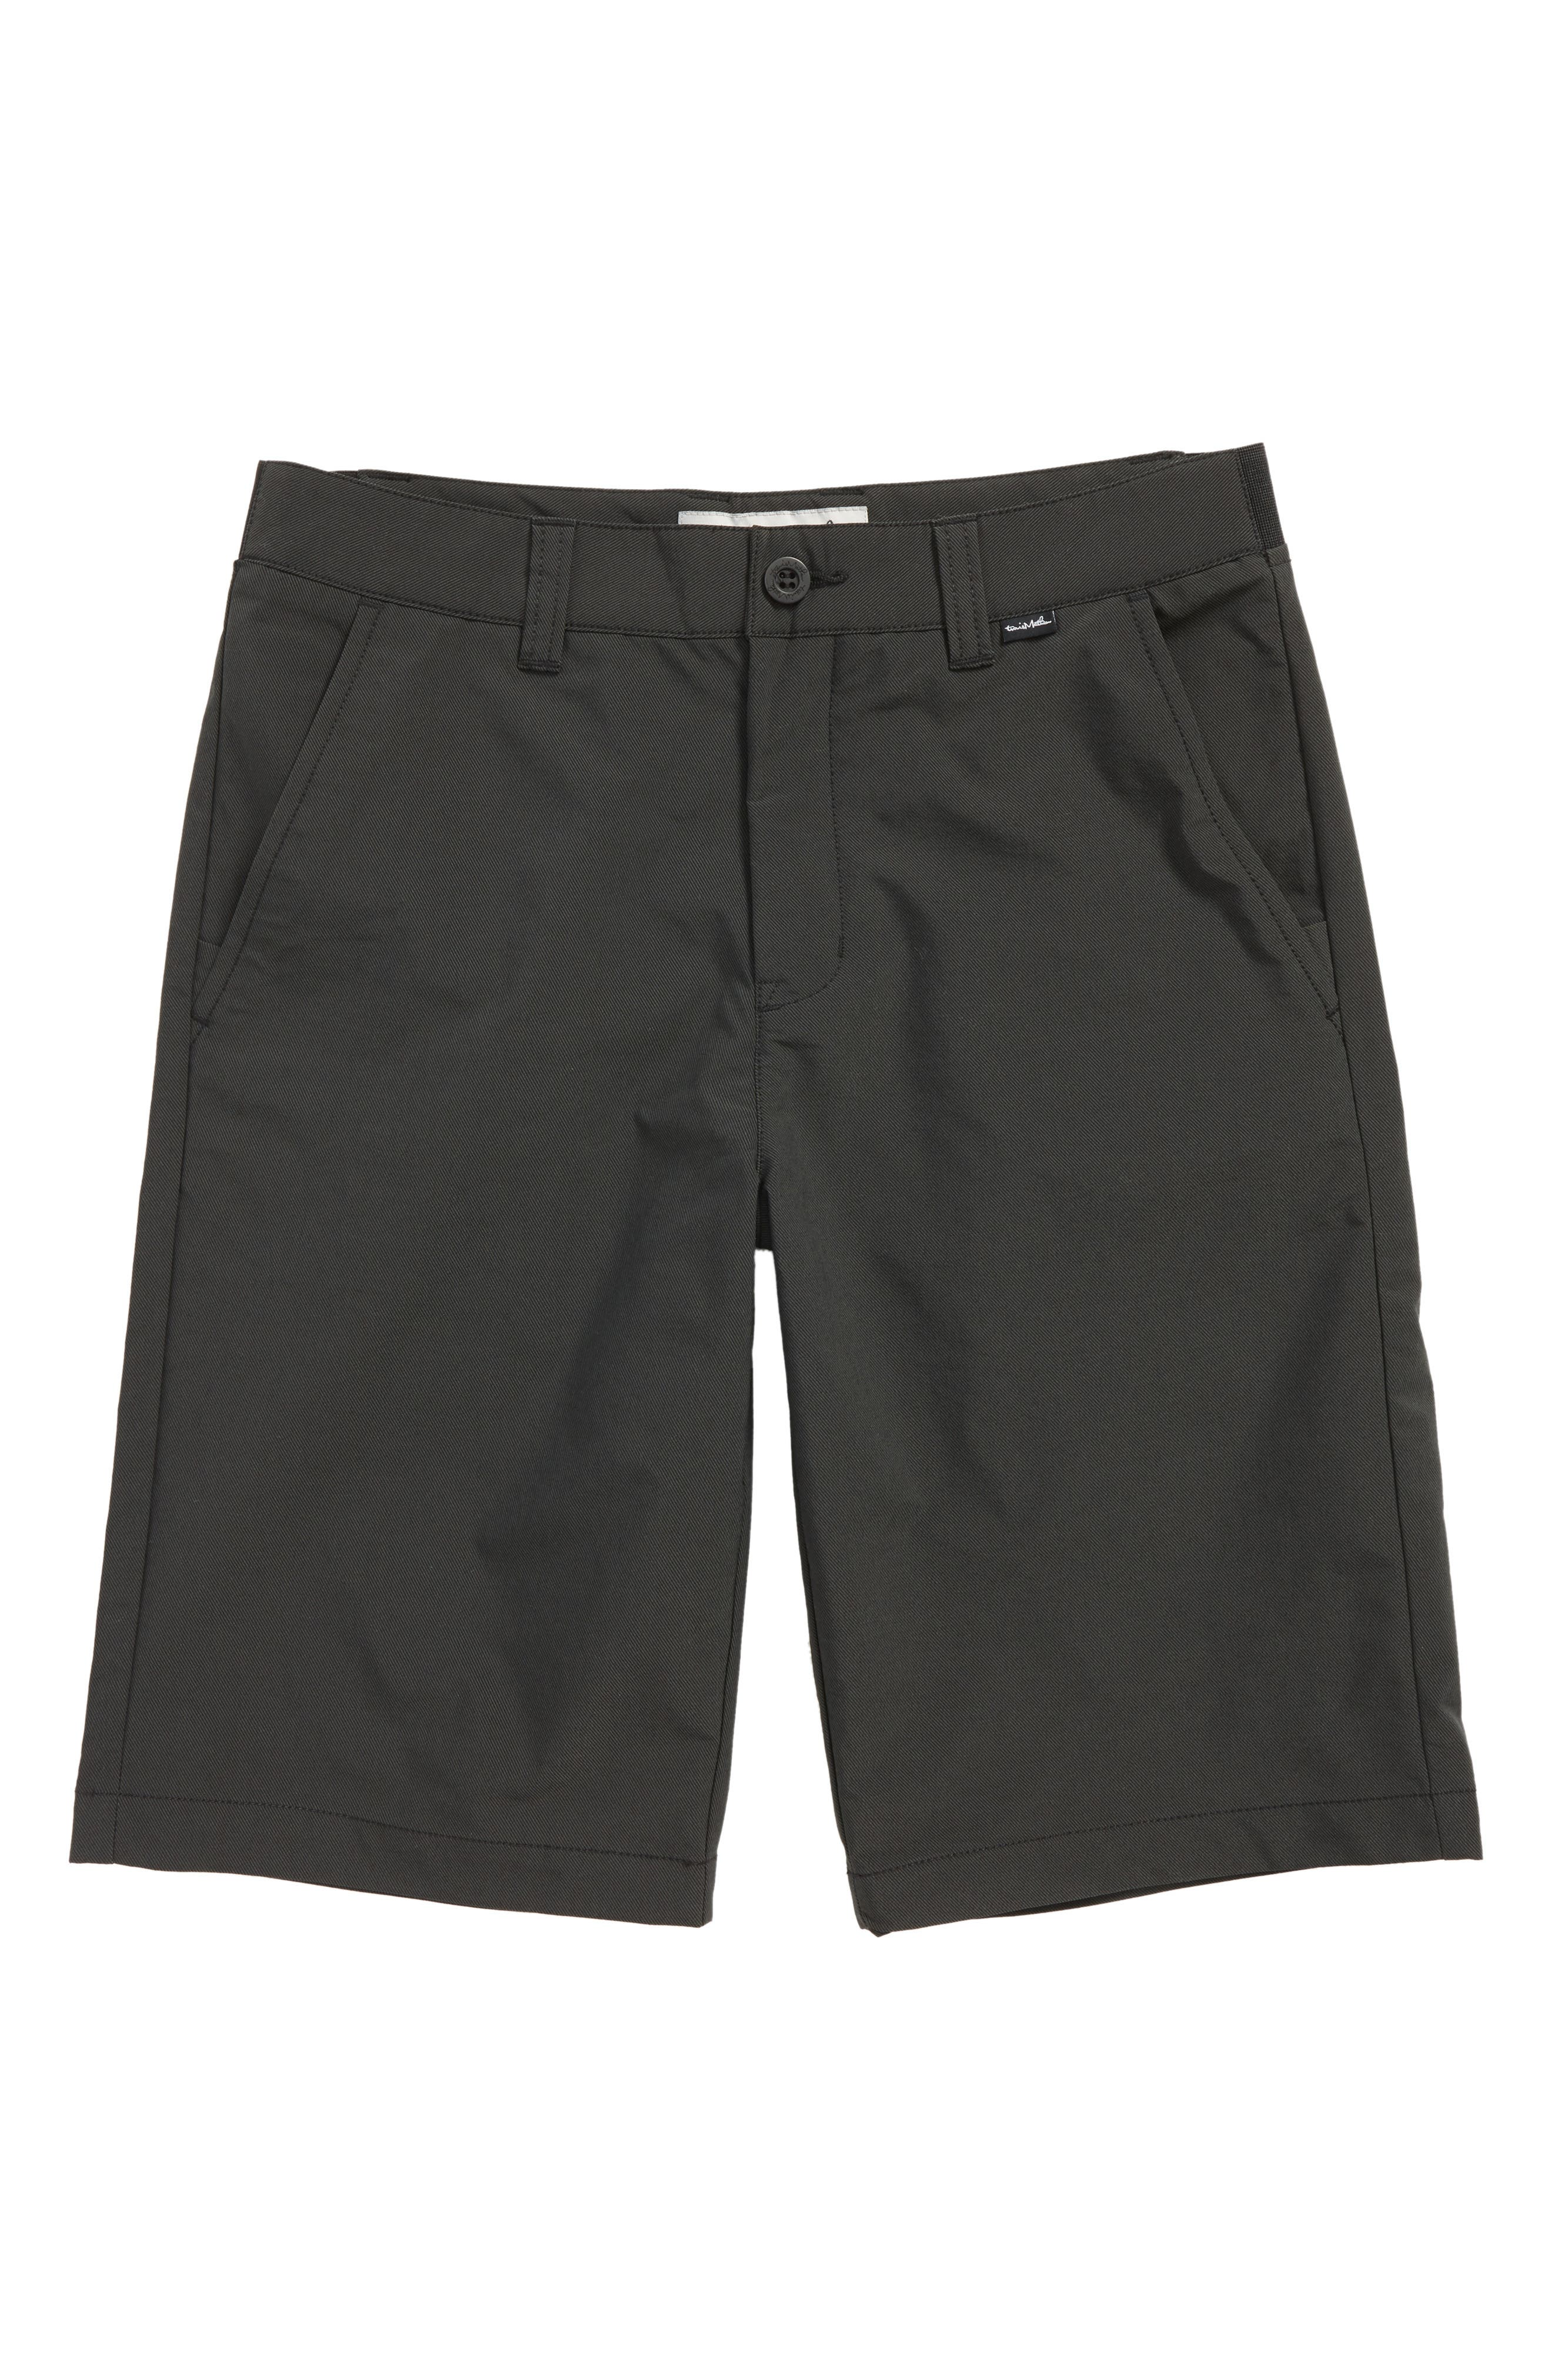 Hef Flex Shorts,                             Main thumbnail 1, color,                             001